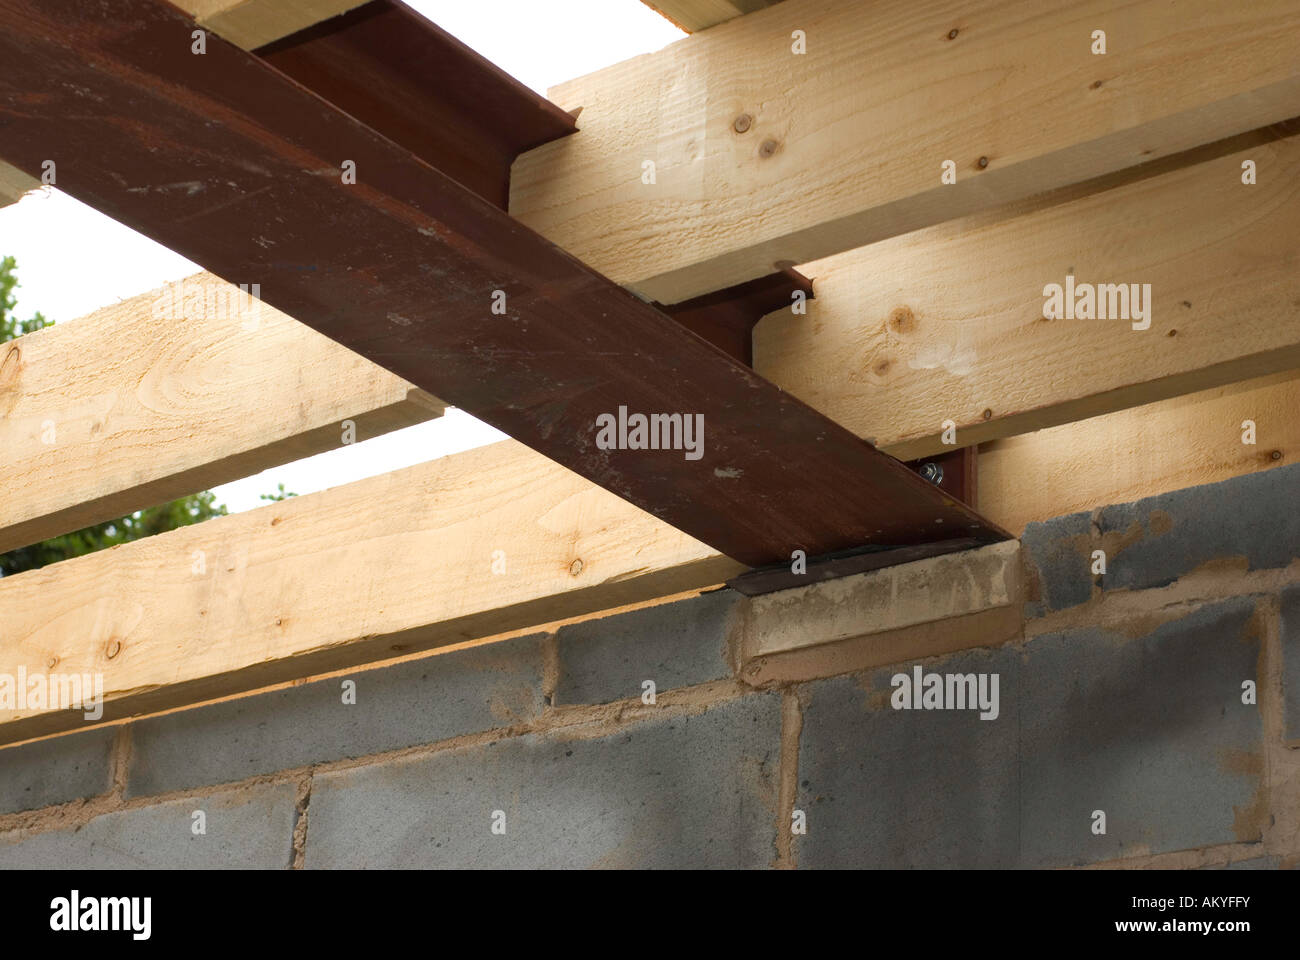 Wooden Roof Joists And Steel Joist Stock Photo Royalty